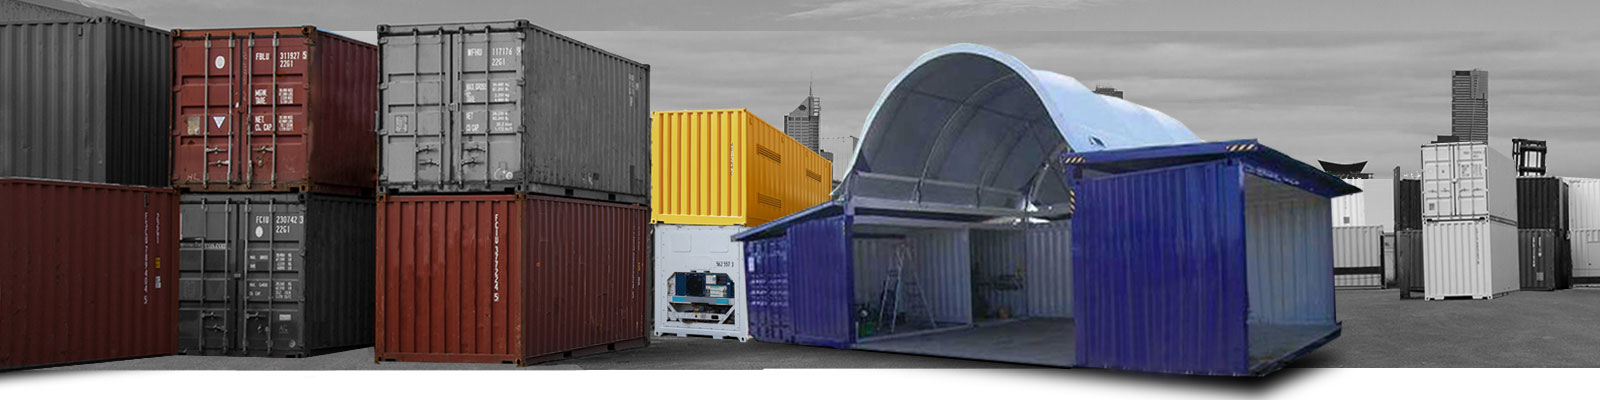 shipping container prices in Melbourne